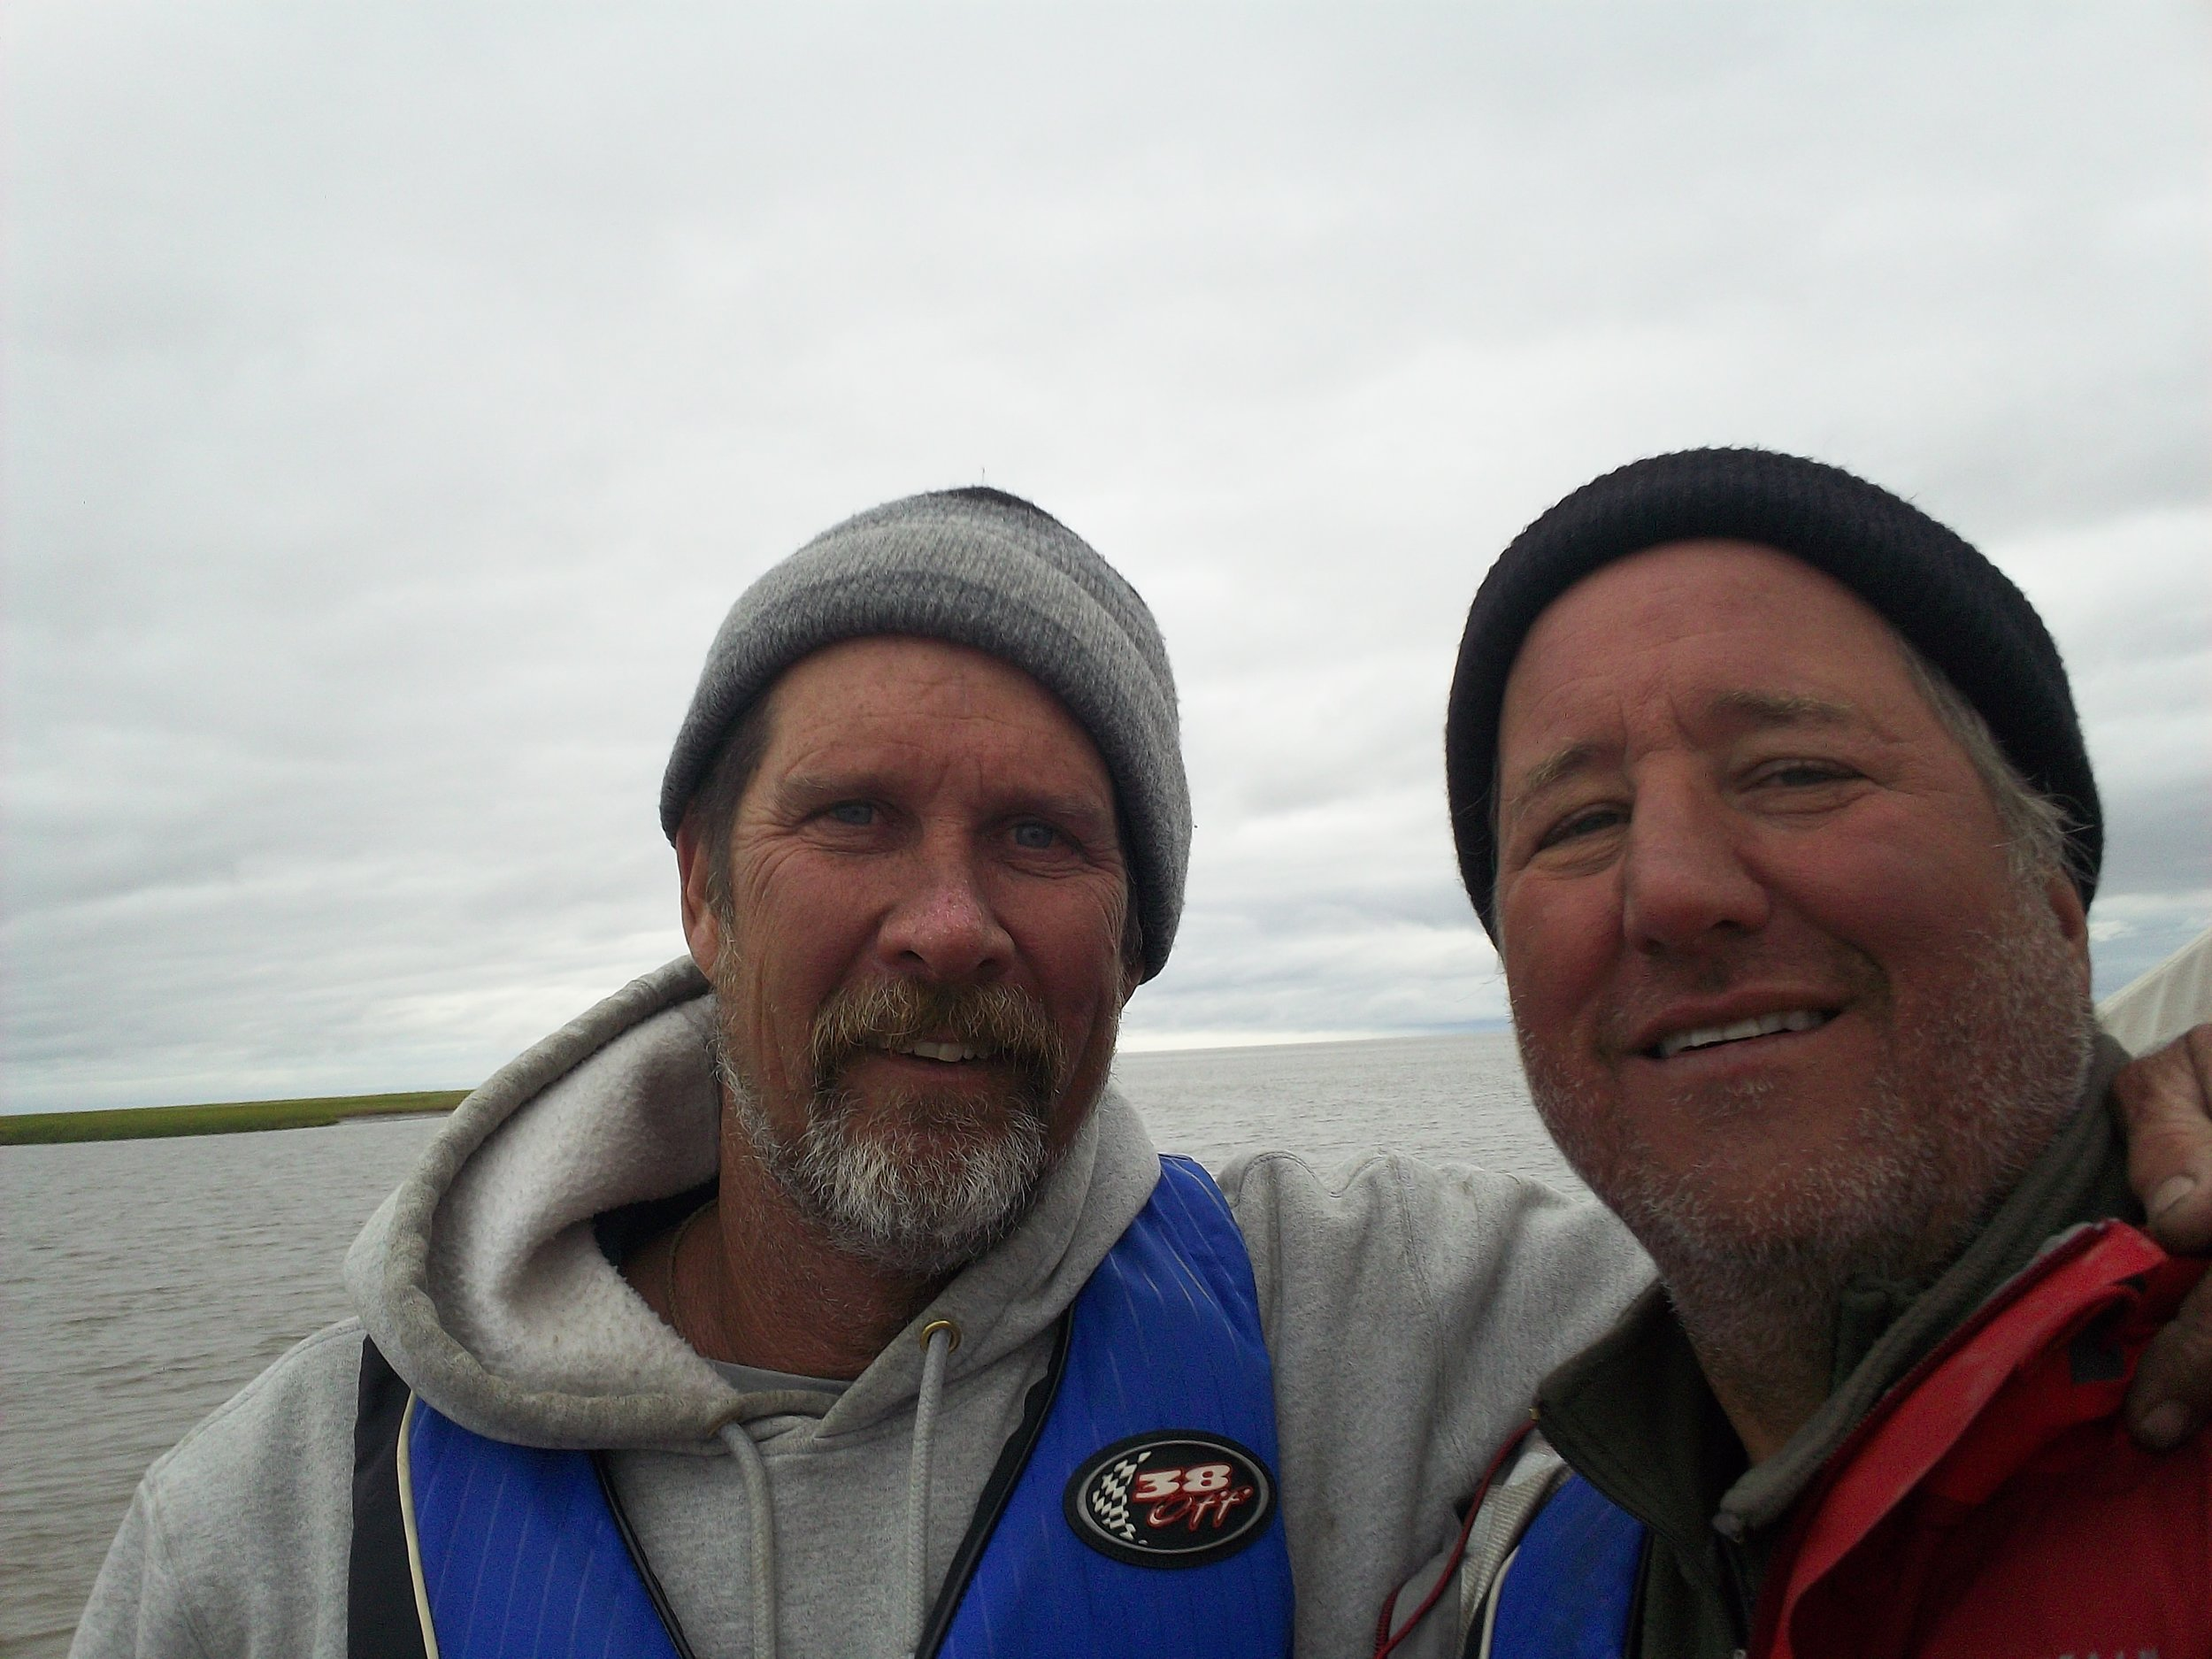 Out on the Bering Sea